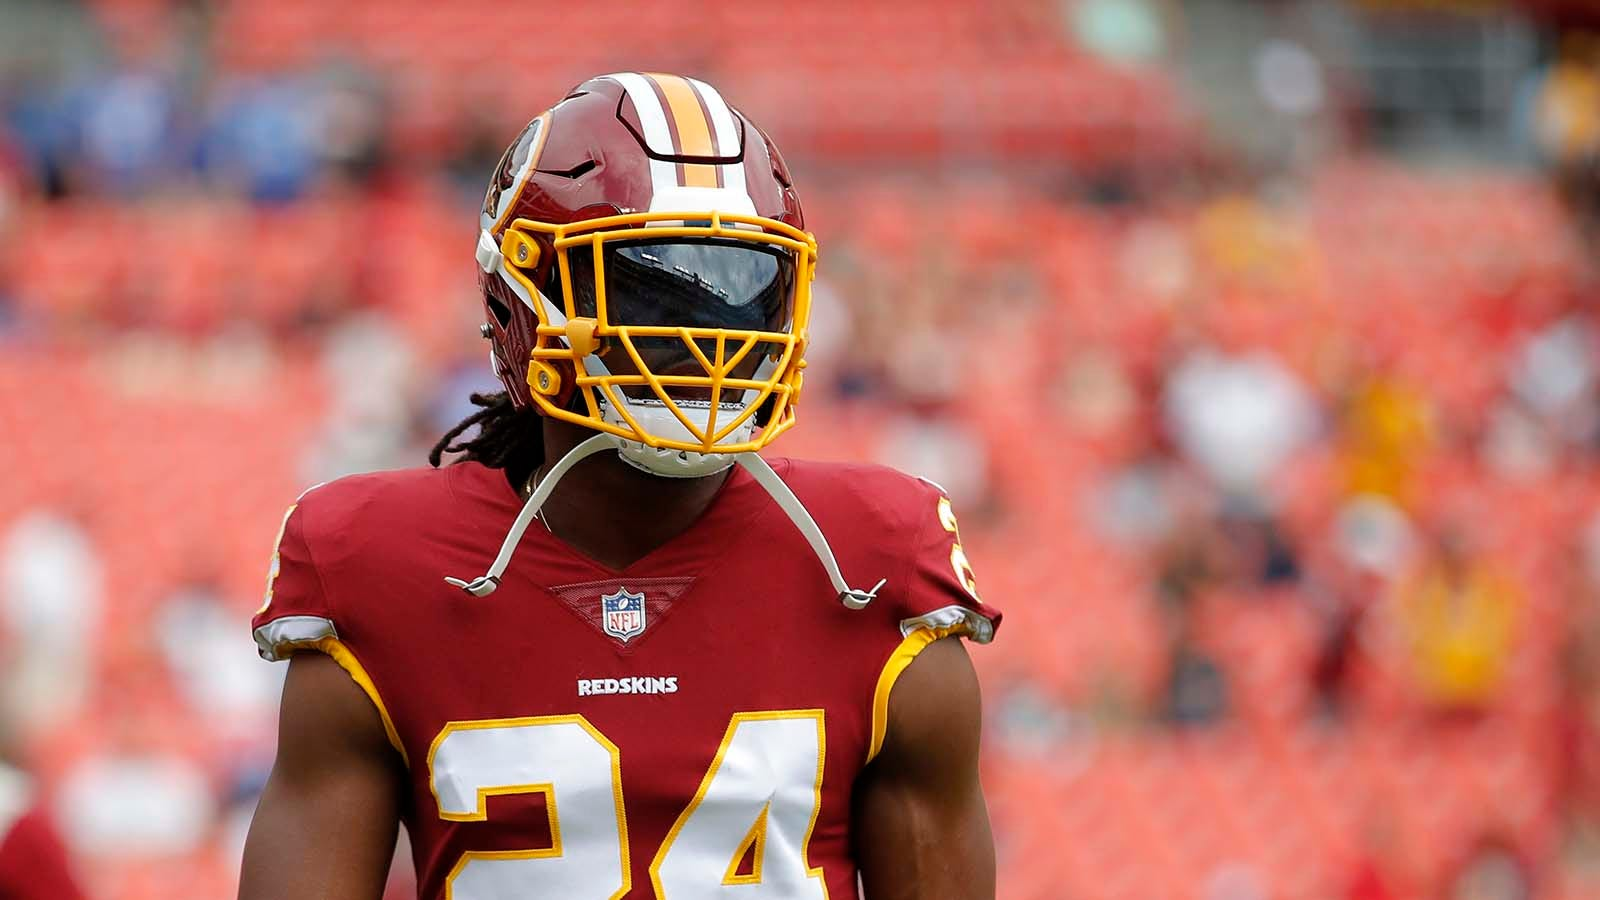 Redskins' Josh Norman rips Titans' Taylor Lewan for taunt: 'Ultimate disrespect'